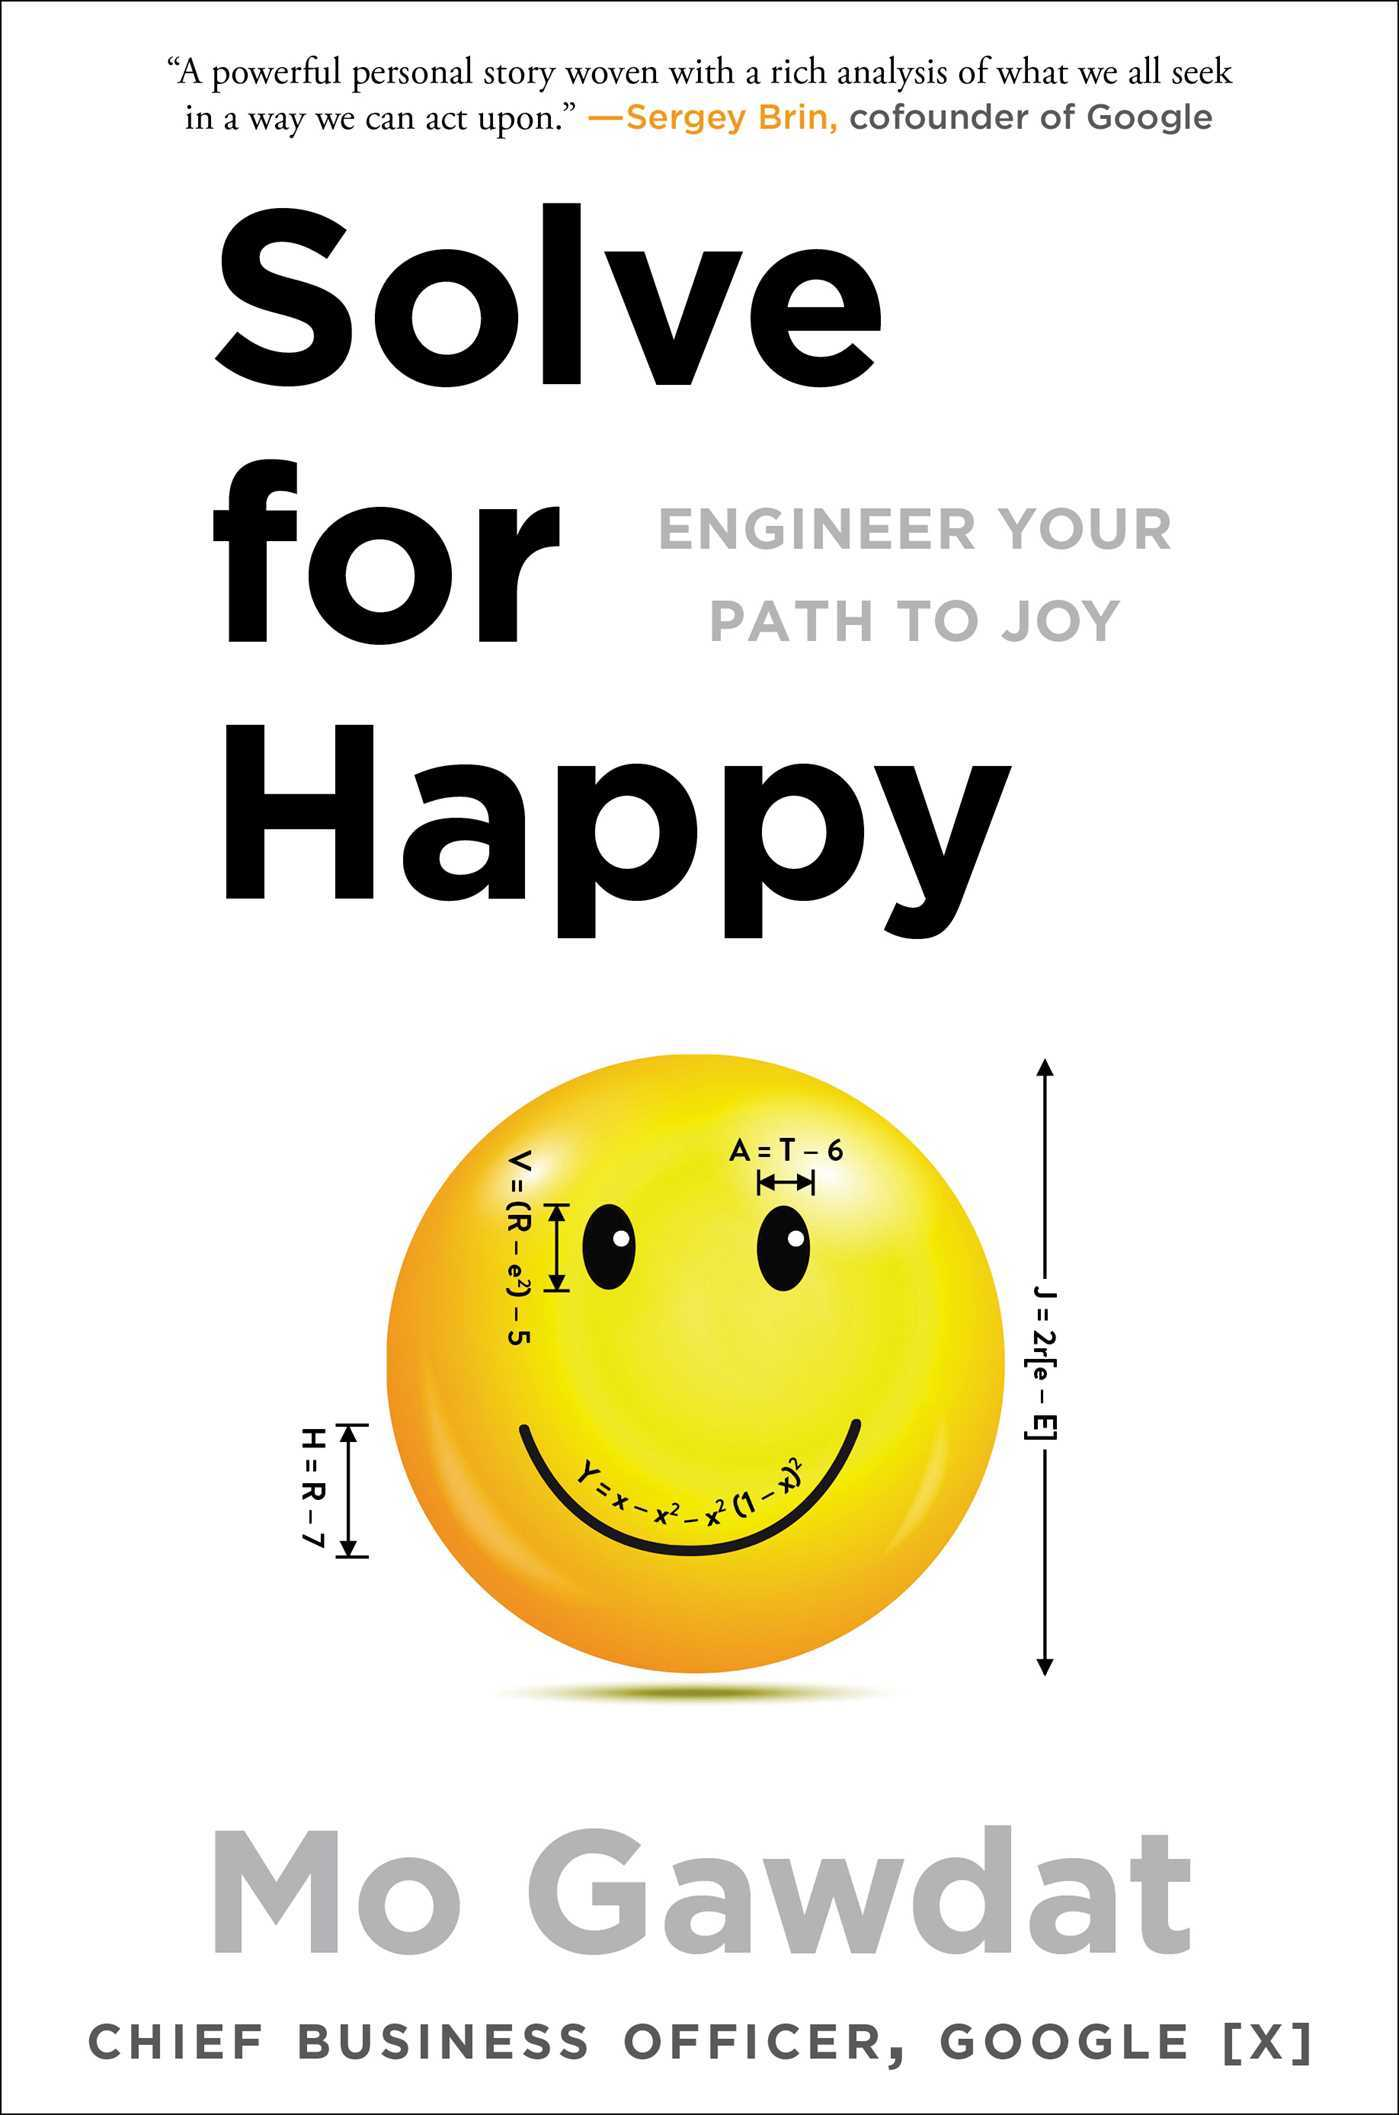 Solve-for-Happy-Engineer-Your-Path-to-Joy